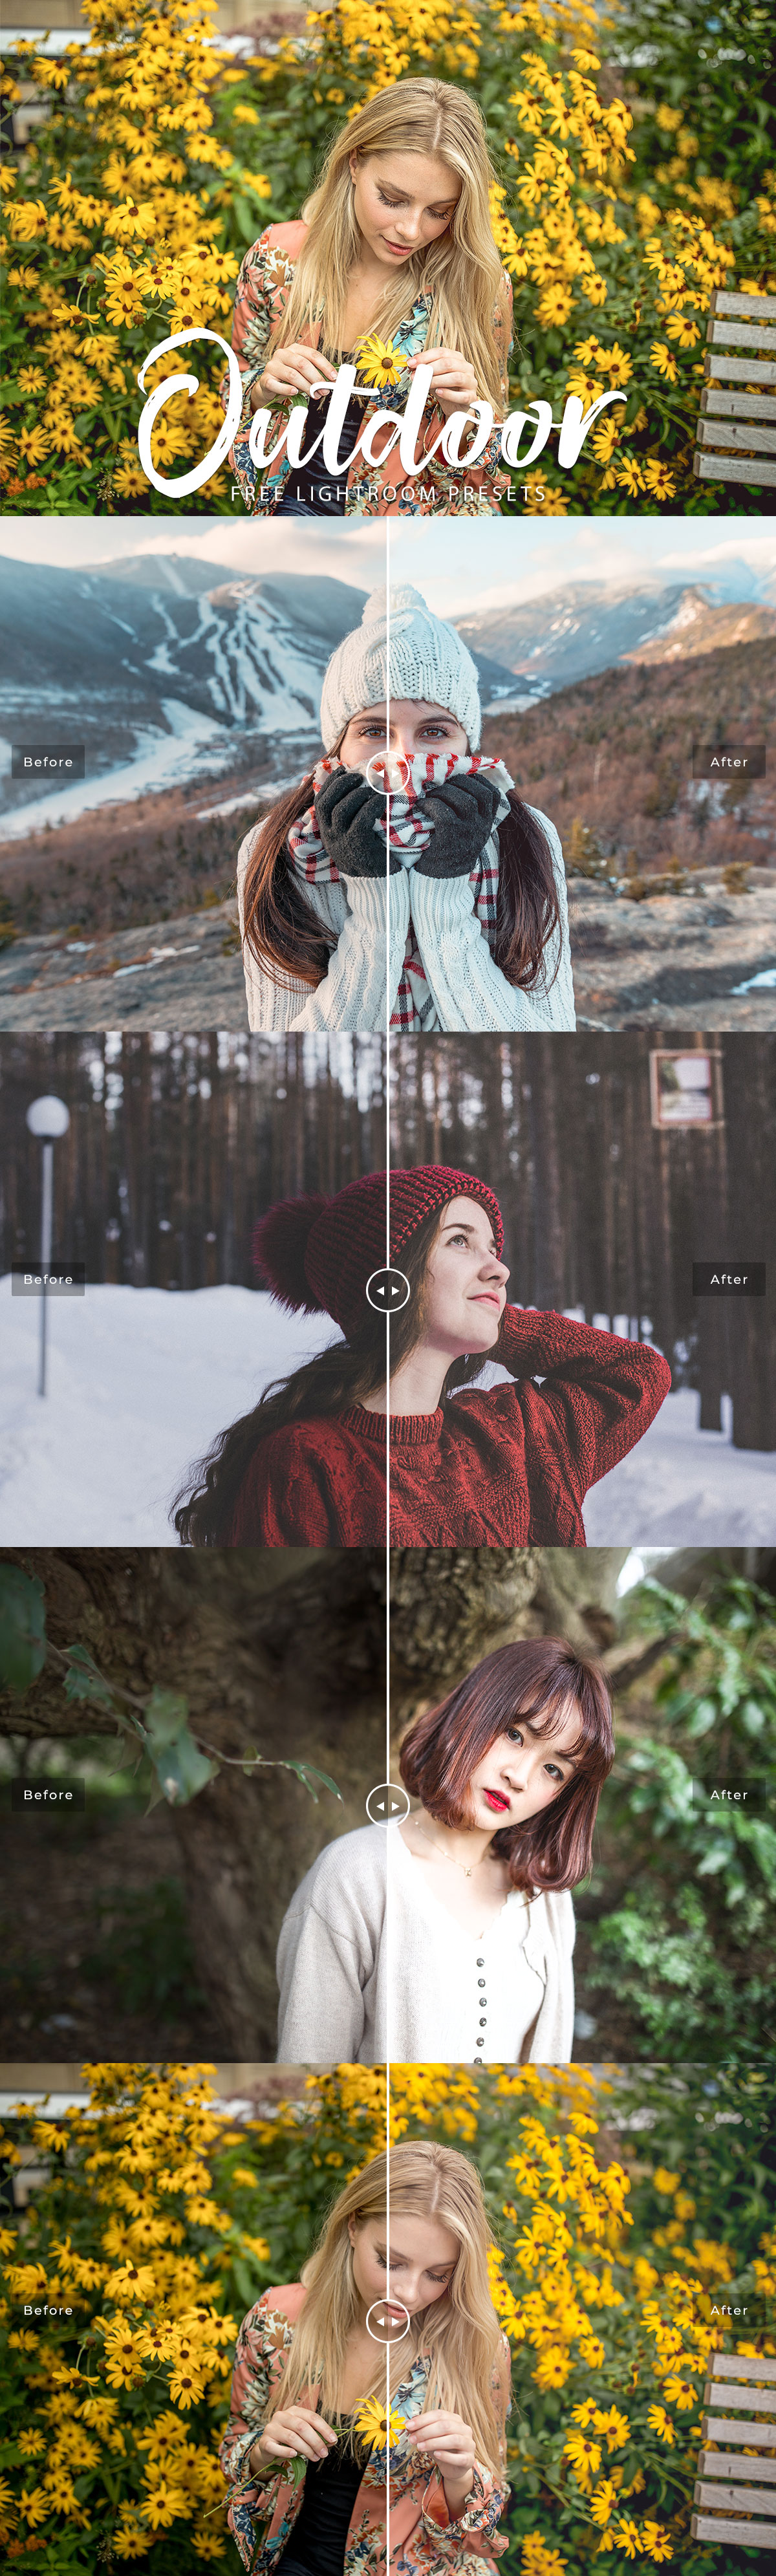 Free #Outdoor #Lightroom #Presetsis a beautiful collection specially handcrafted to enhance your outdoor photography.